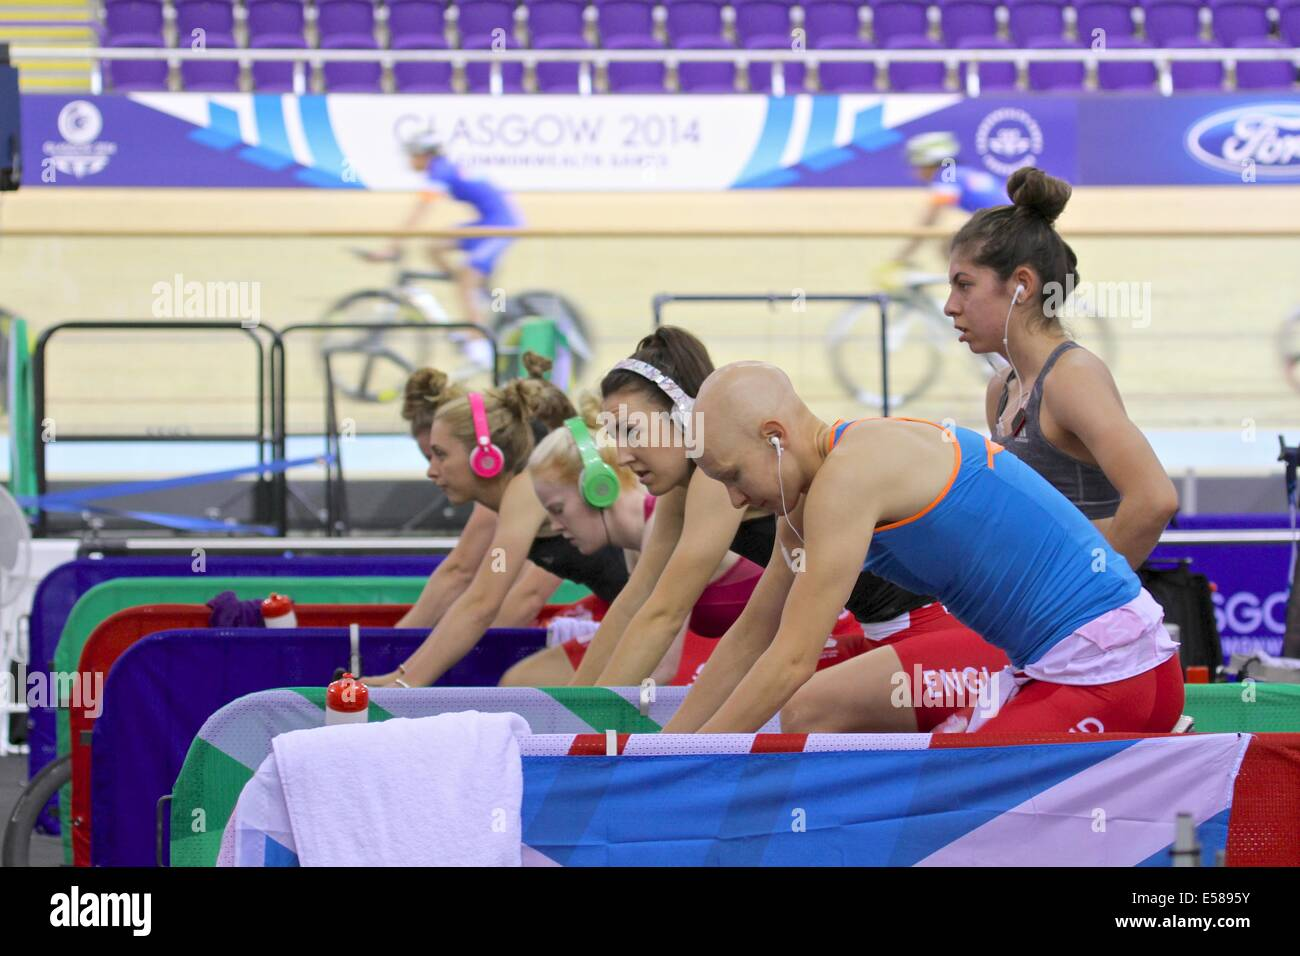 Glasgow, Scotland, UK. 23rd July 2014. The final training session at the Sir Chris Hoy Velodrome before the start Stock Photo